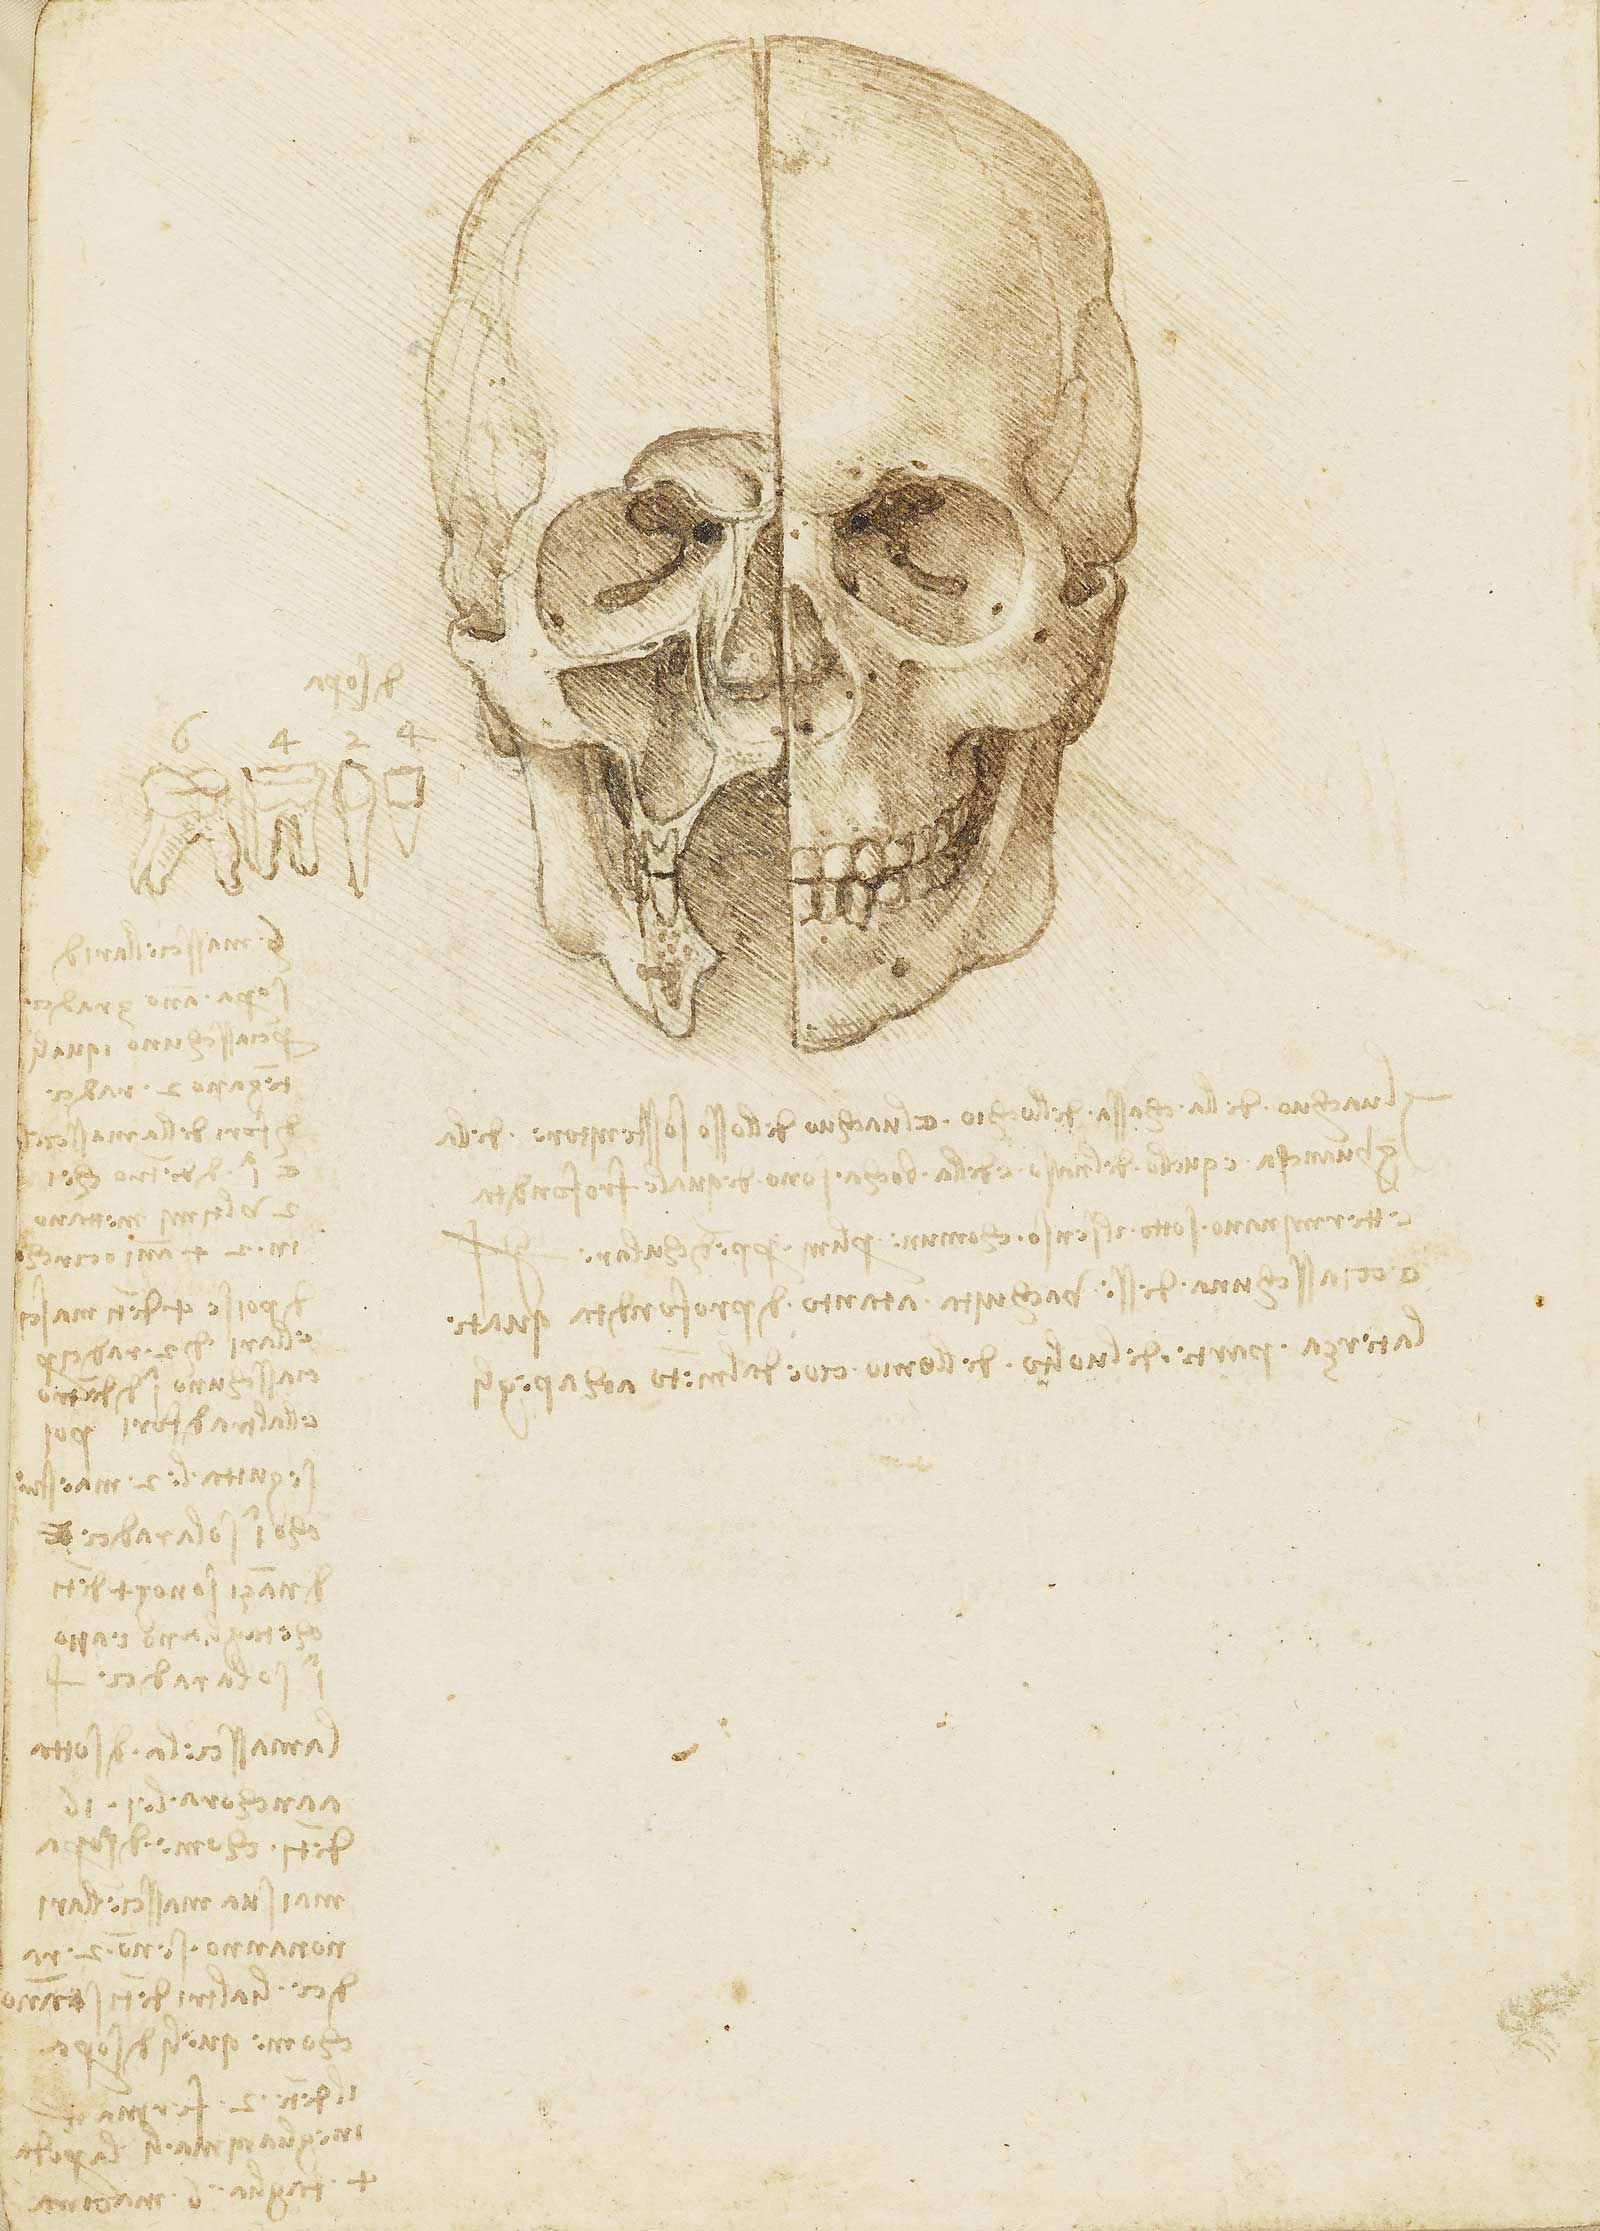 The skull sectioned, 1489, traces of black chalk, pen and ink by Leonardo da Vinci, to be displayed at Ulster Museum, Belfast